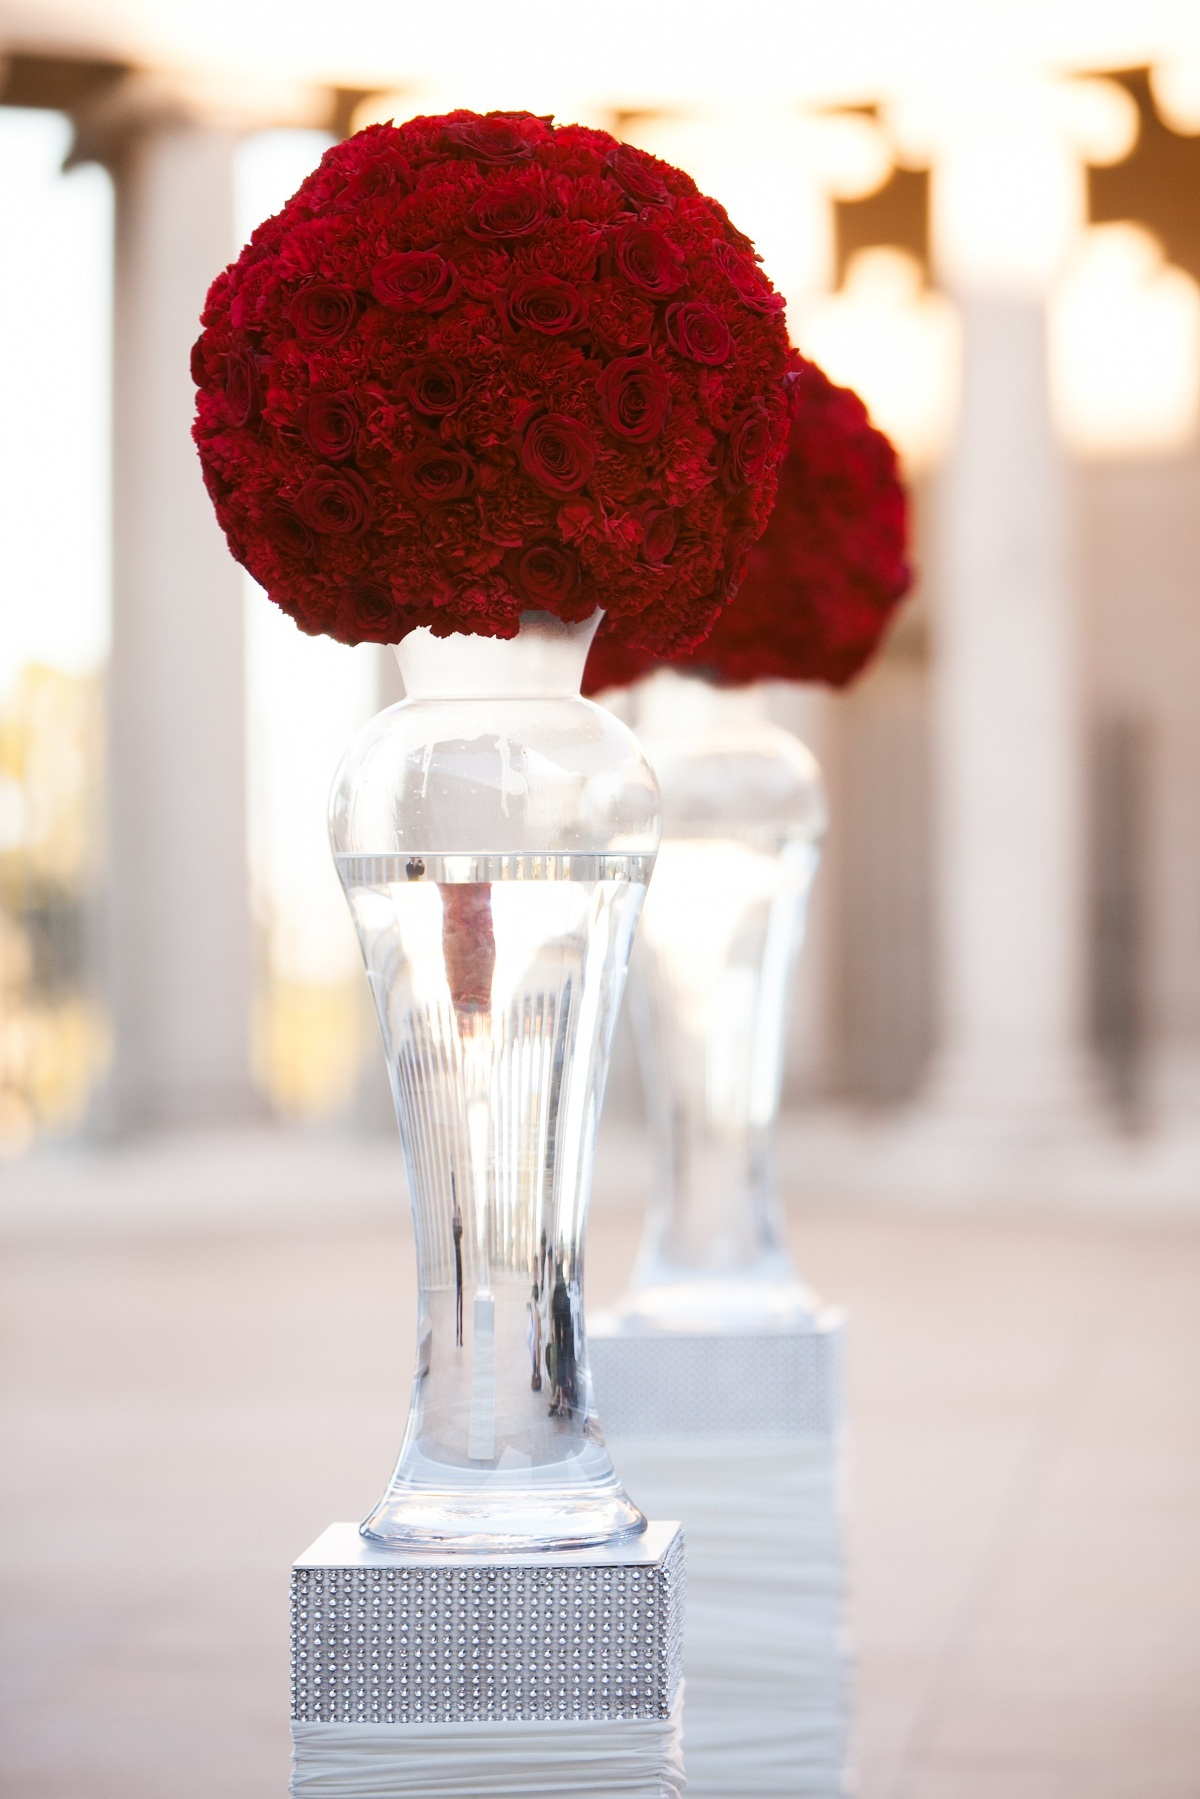 Ceremony, Flowers & Decor, Decor, red, Roses, Wendy jason